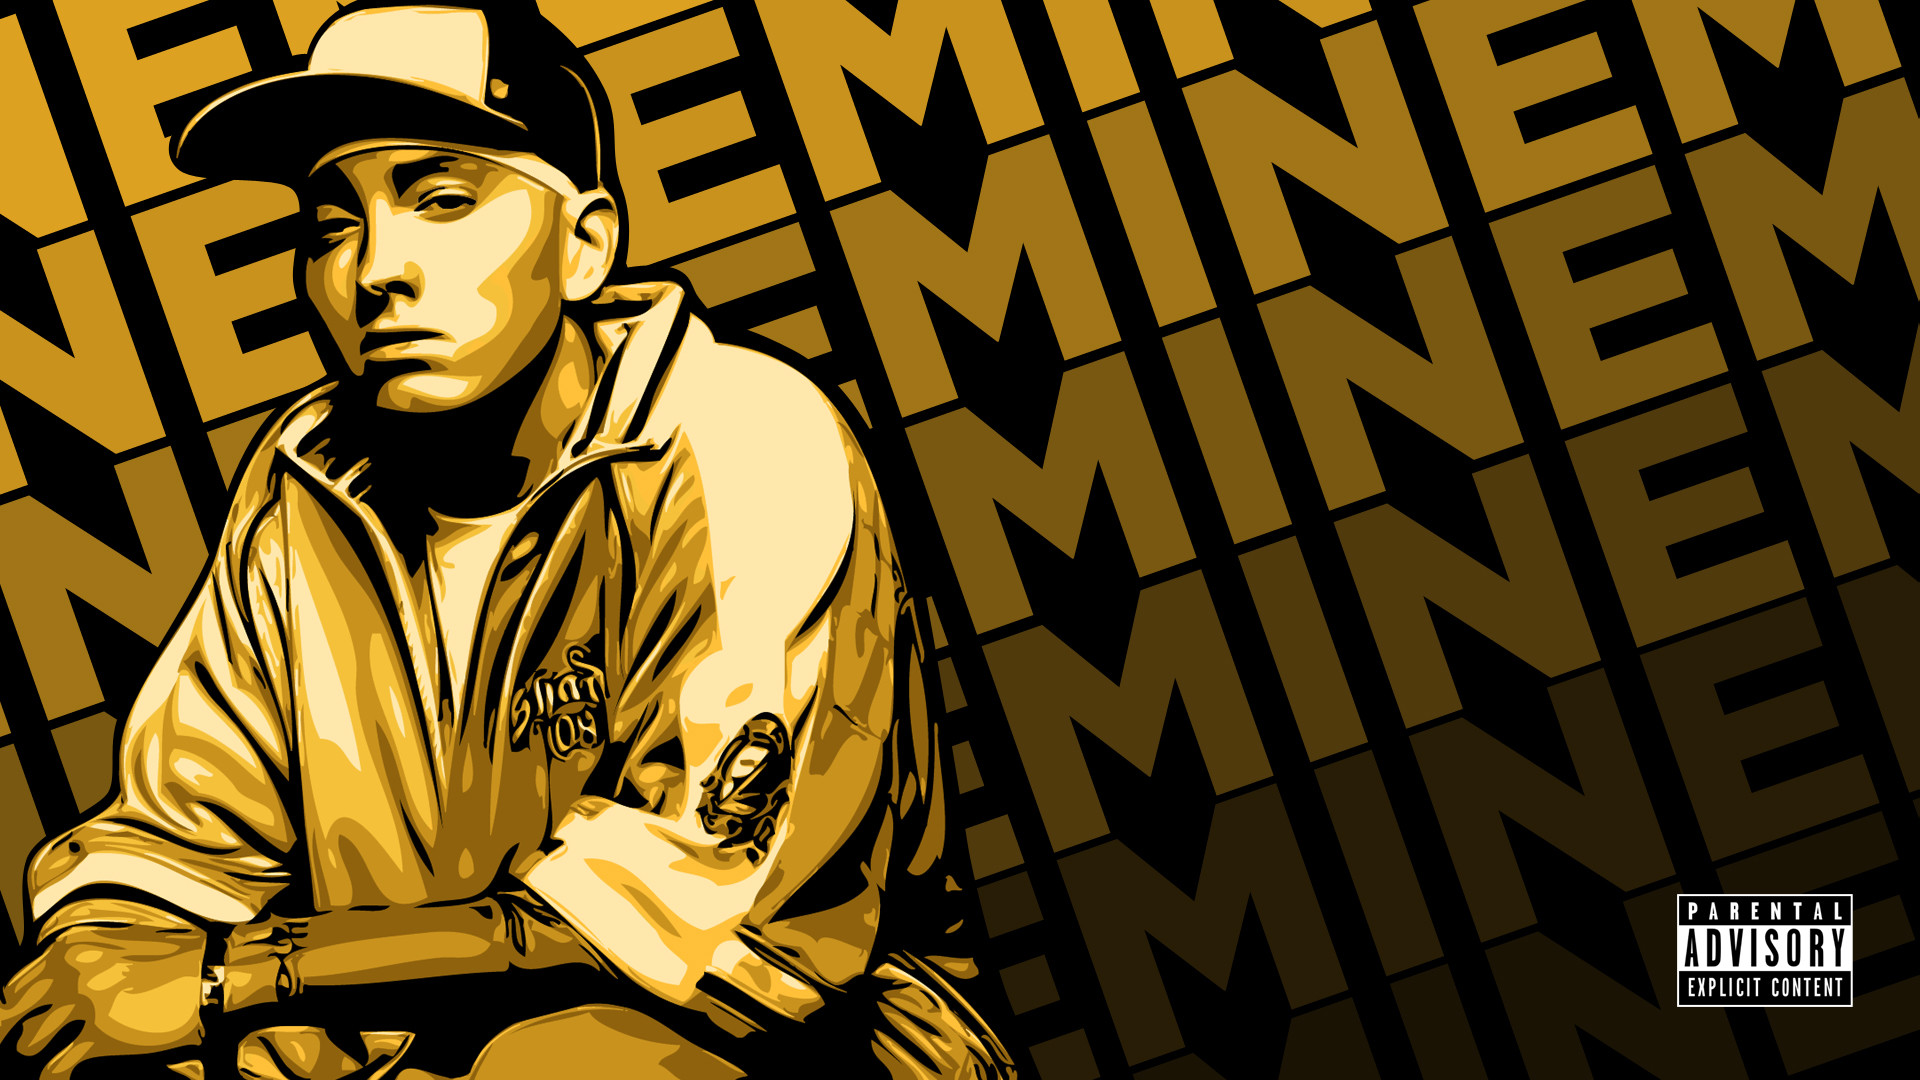 1920x1080 0 Eminem Wallpaper #7 Eminem Wallpaper Hd